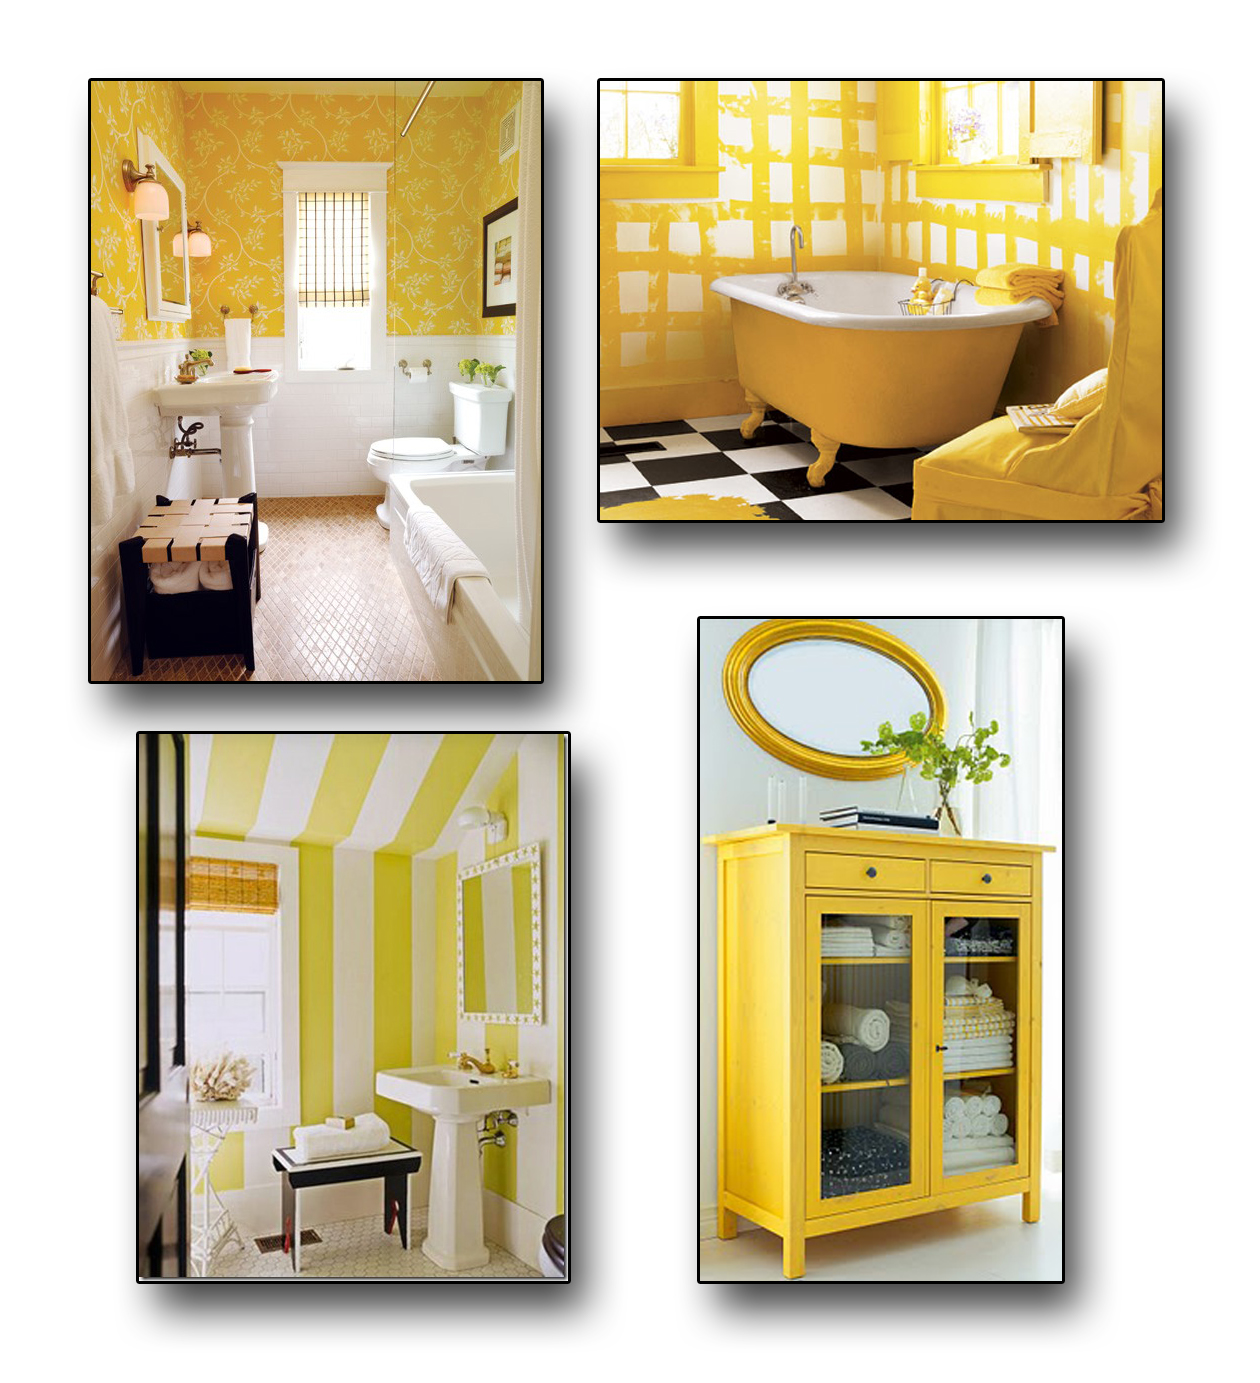 Yellow and gray bathroom decor house made of paper for Bathroom decor yellow and gray